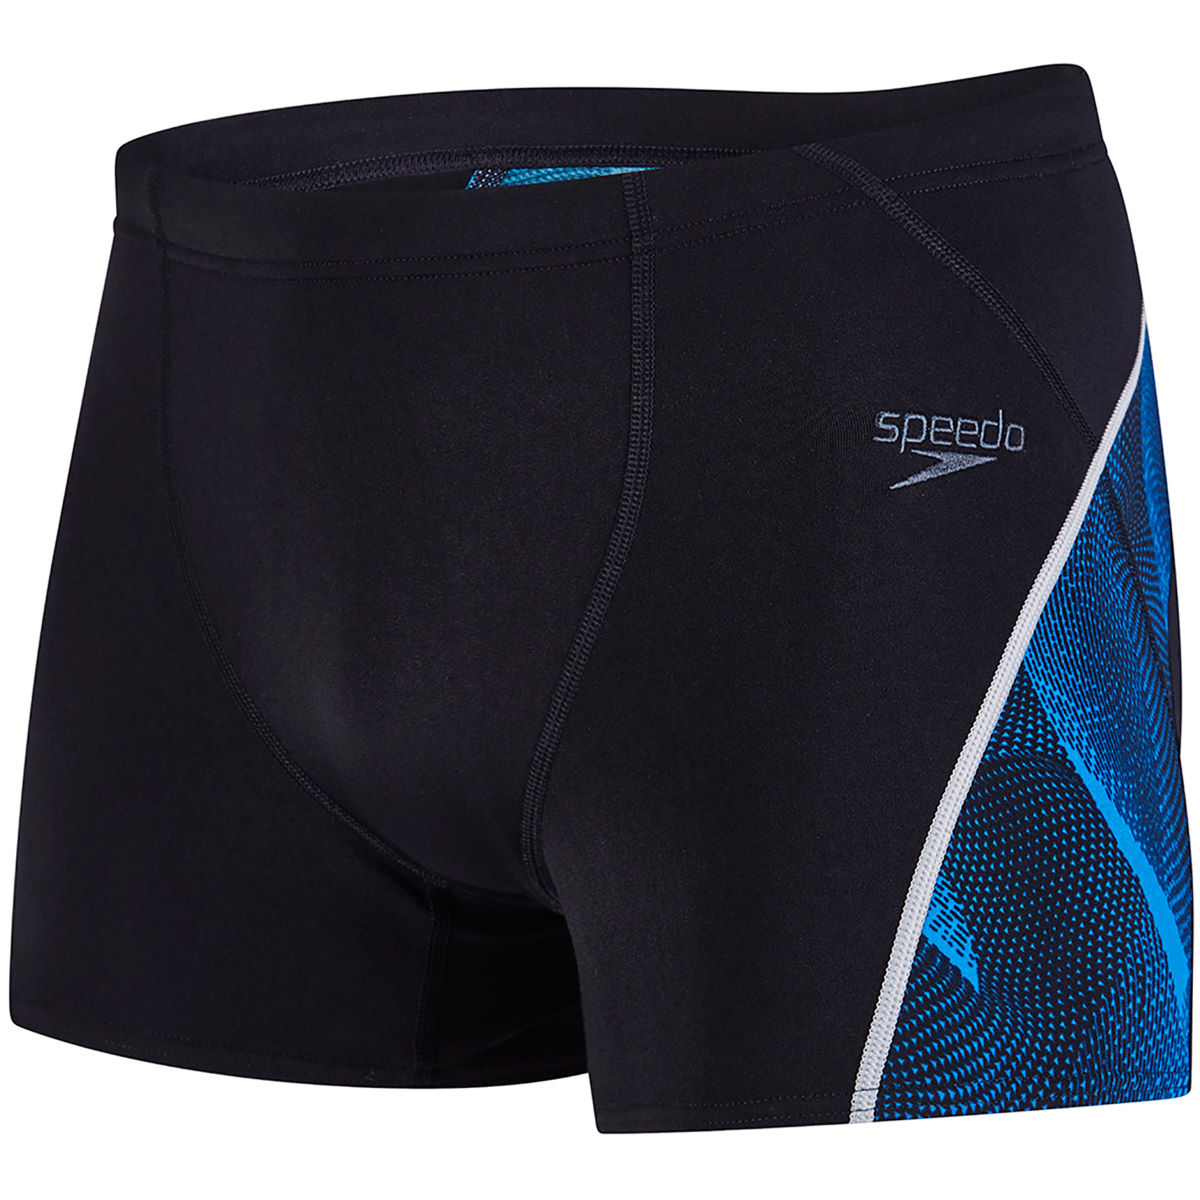 Boxer de bain Speedo Fit Graphic - 32 Black/Danube